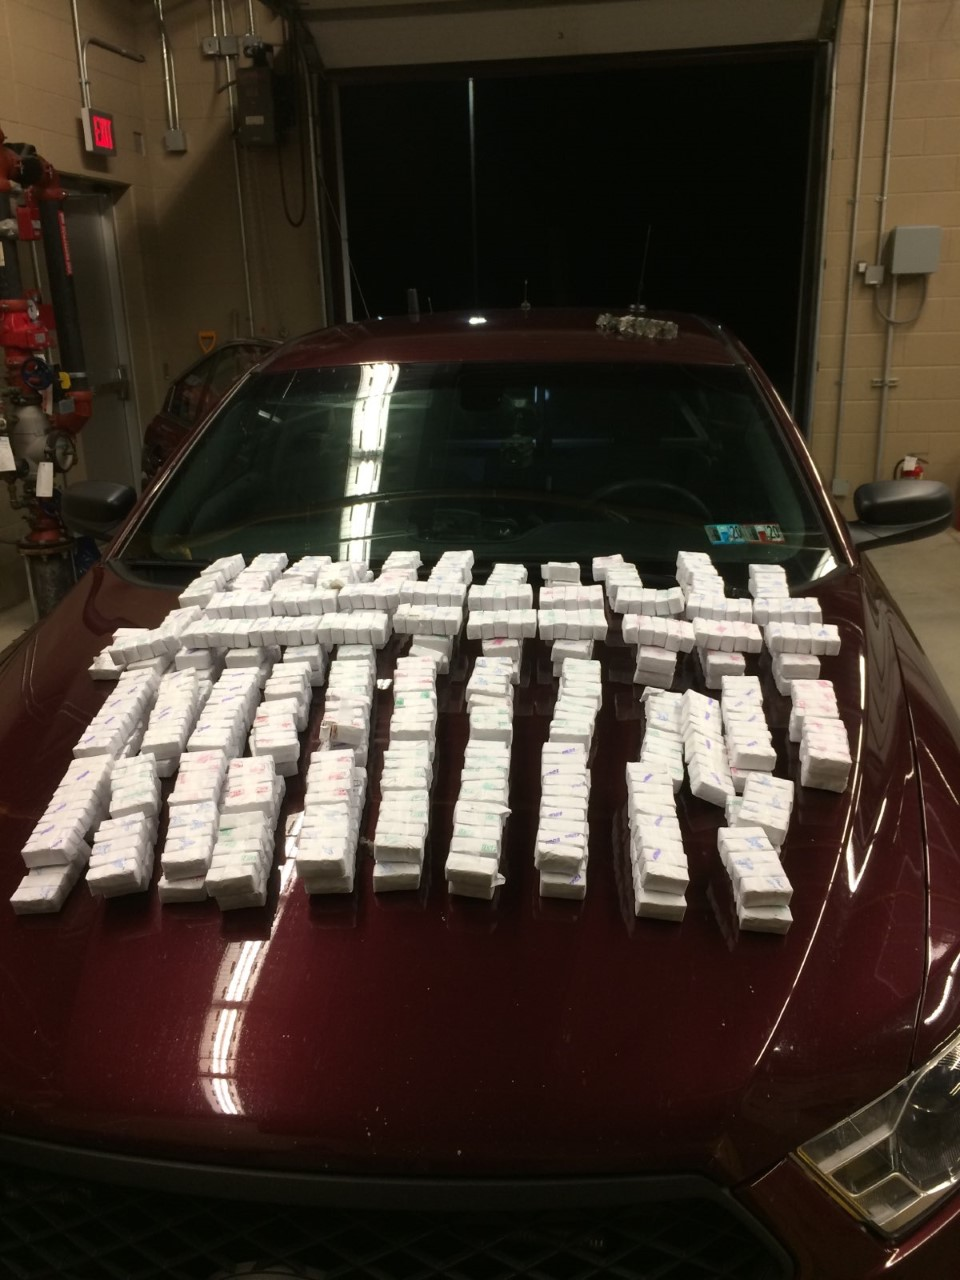 New York man caught with almost $500k in drugs hidden in